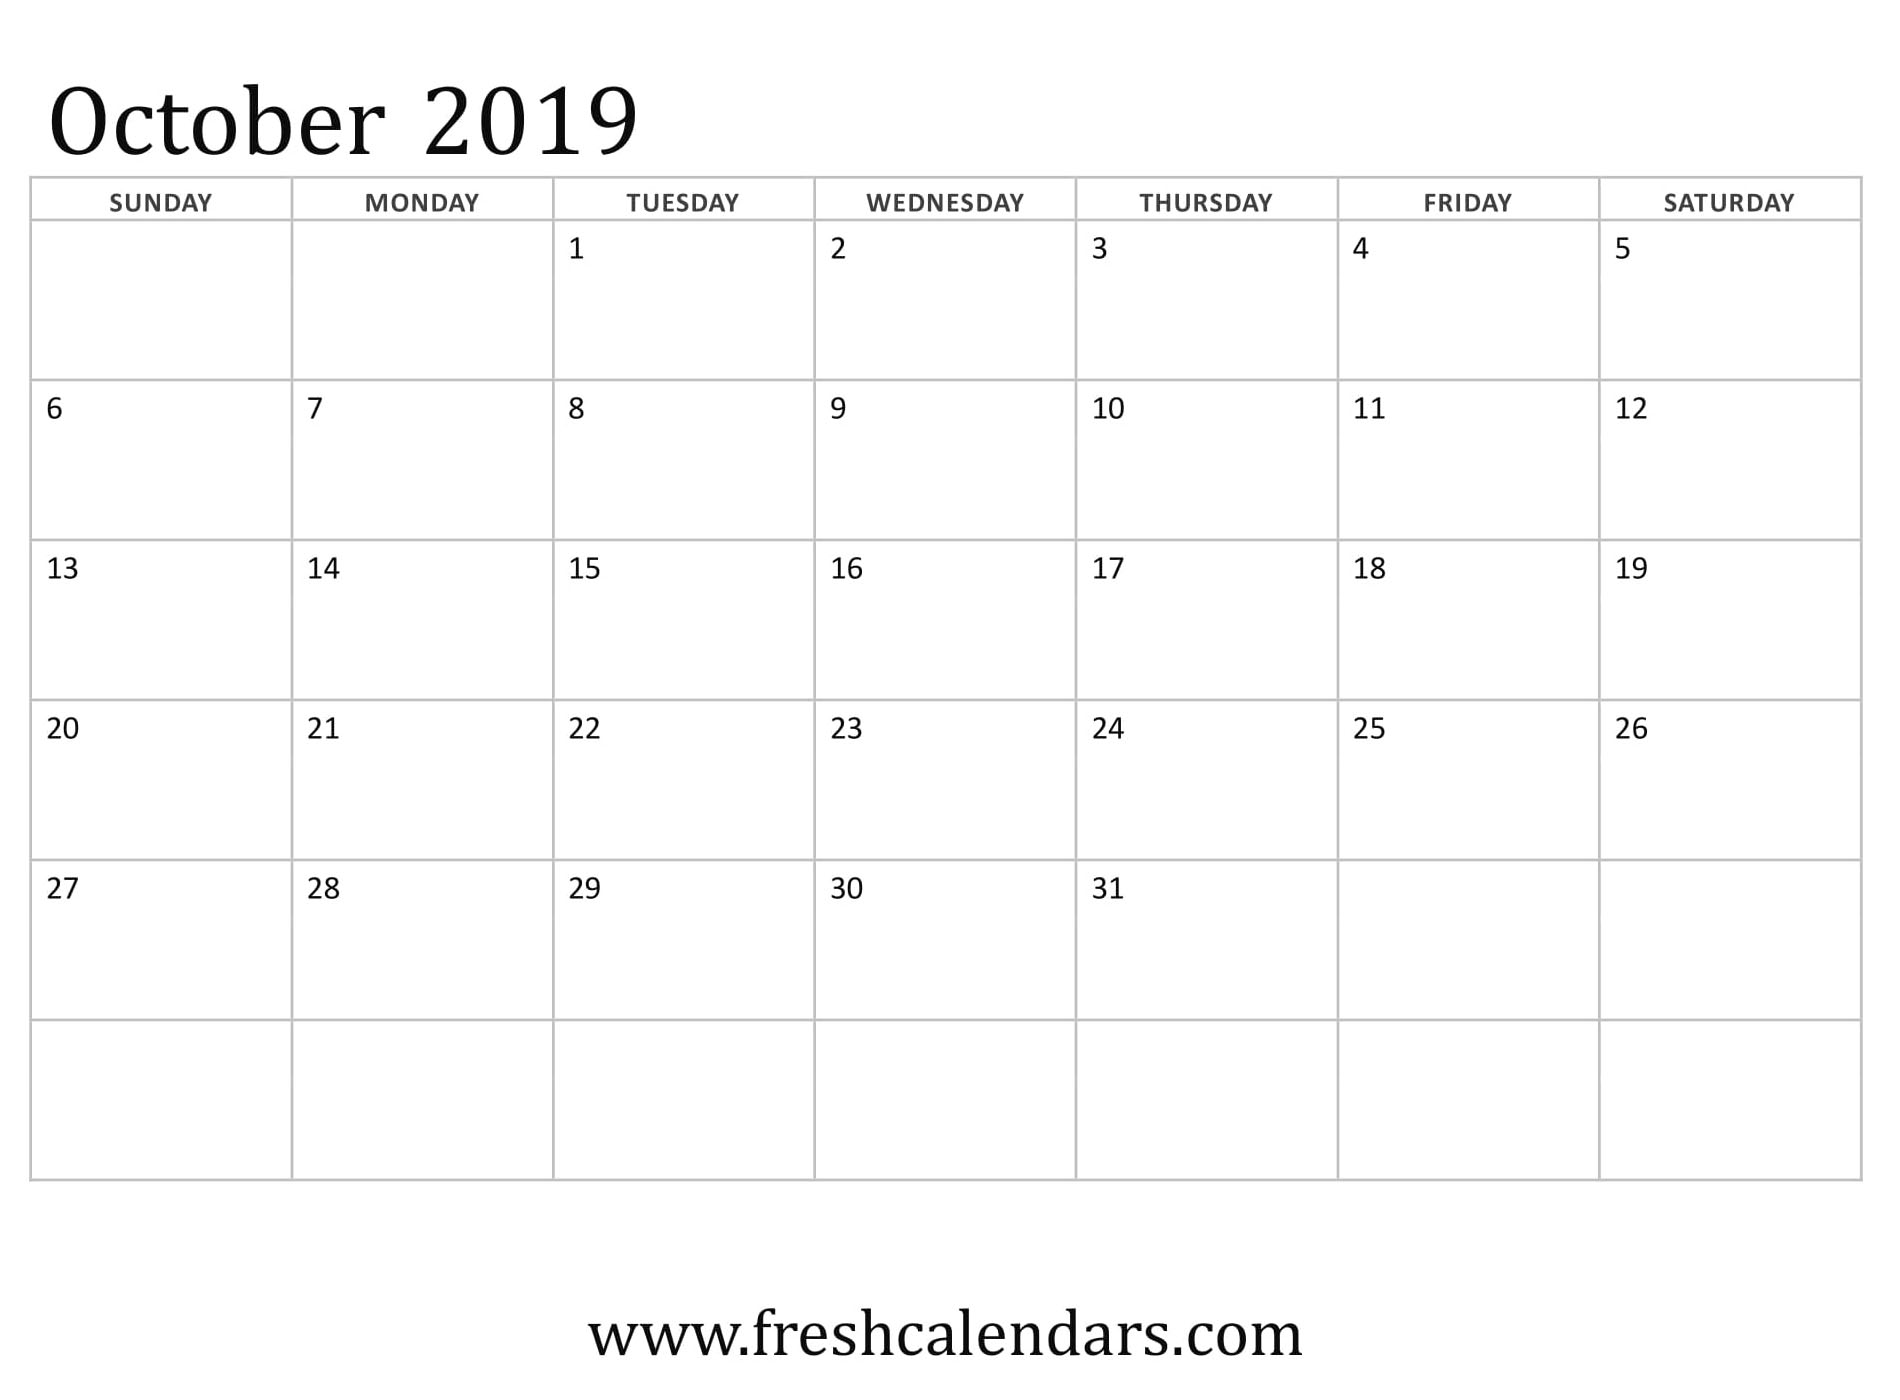 October 2019 Calendar Basic Template